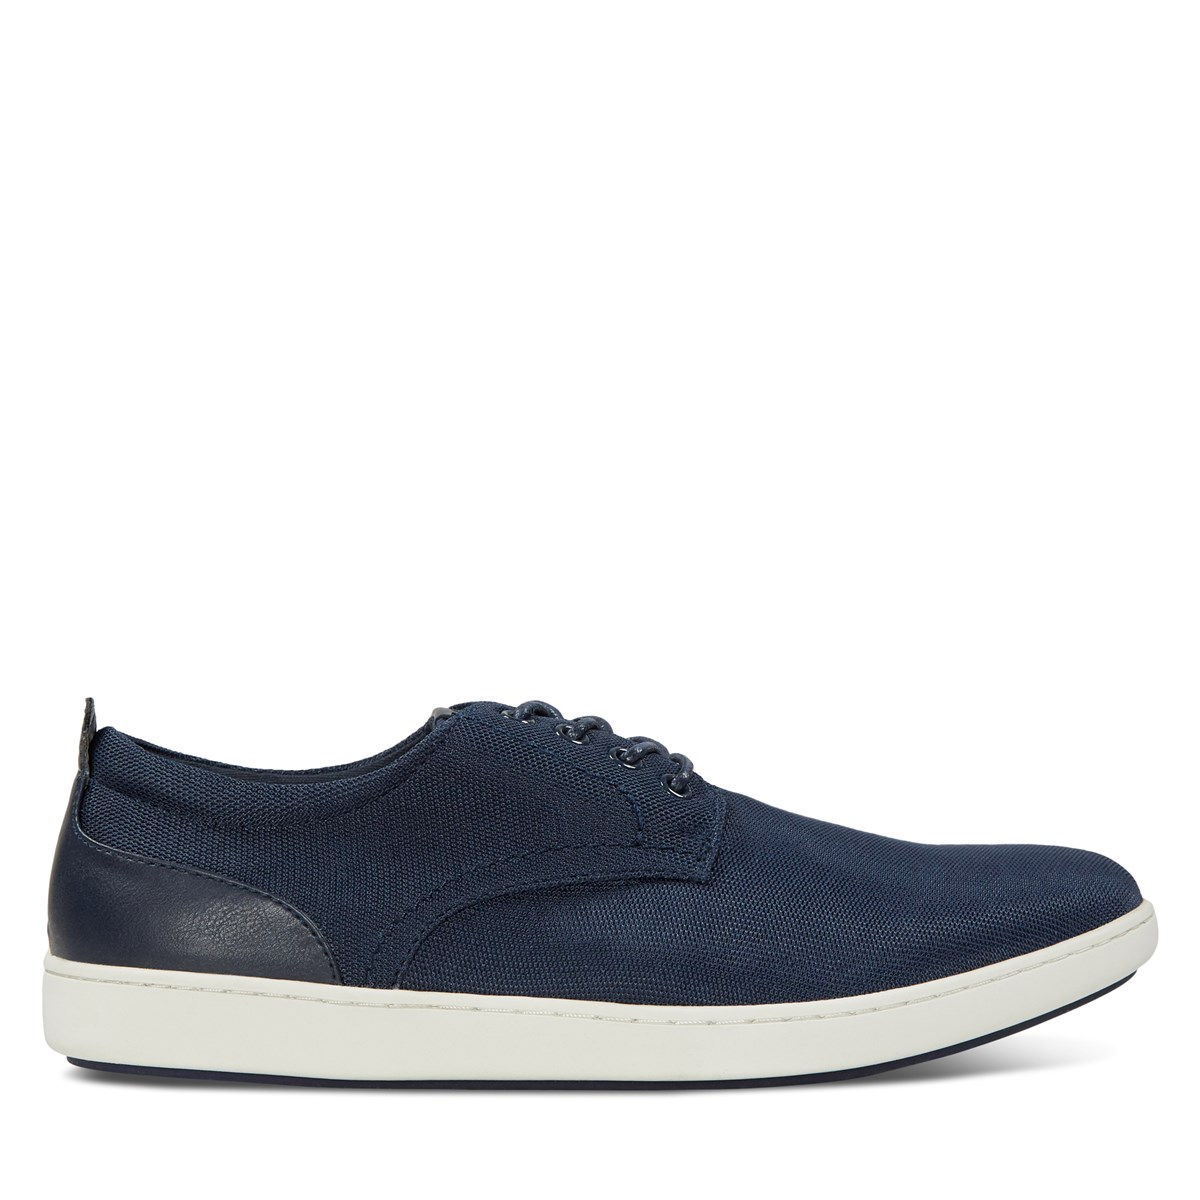 Men's Paolo Shoe in Navy Mesh